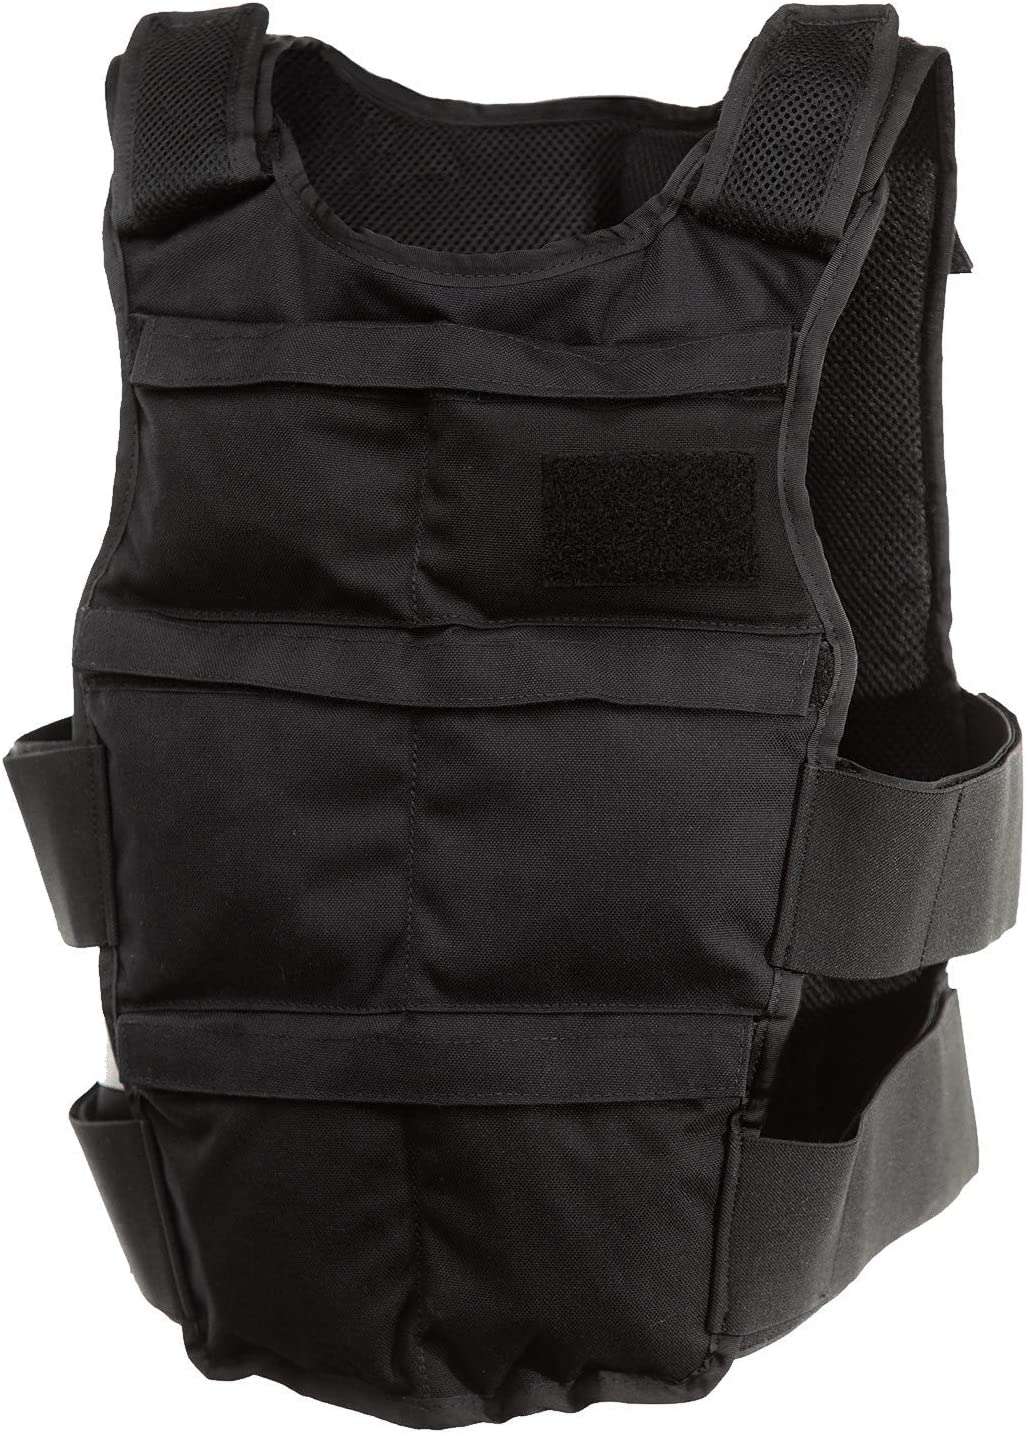 Brute Force Weighted Vest Murph Tested, WOD Approved The Best Adjustable Weighted Vest for Running Mobility on The Market for Men Women – Made in The USA